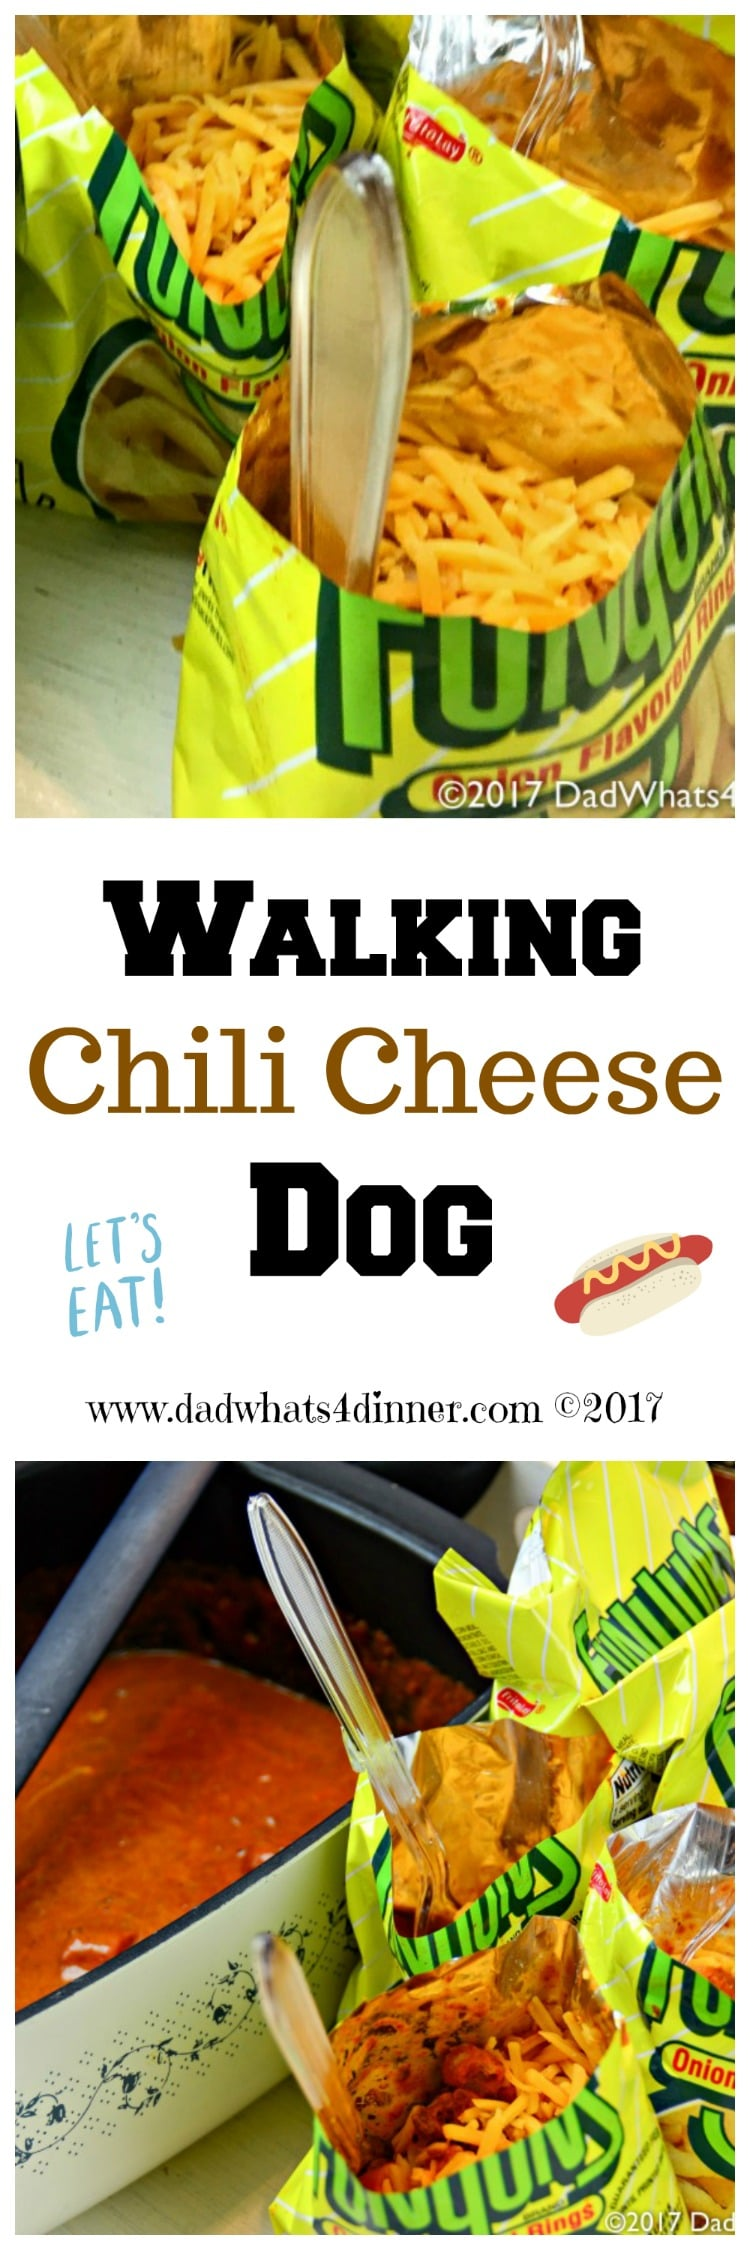 You will be the star at your next tailgate with this easy to make Walking Chili Cheese Dog recipe. All the great Cheese Coney flavor, but no bun needed! #ad @myfamilydollar www.dadwhats4dinner.com #tailgatefood